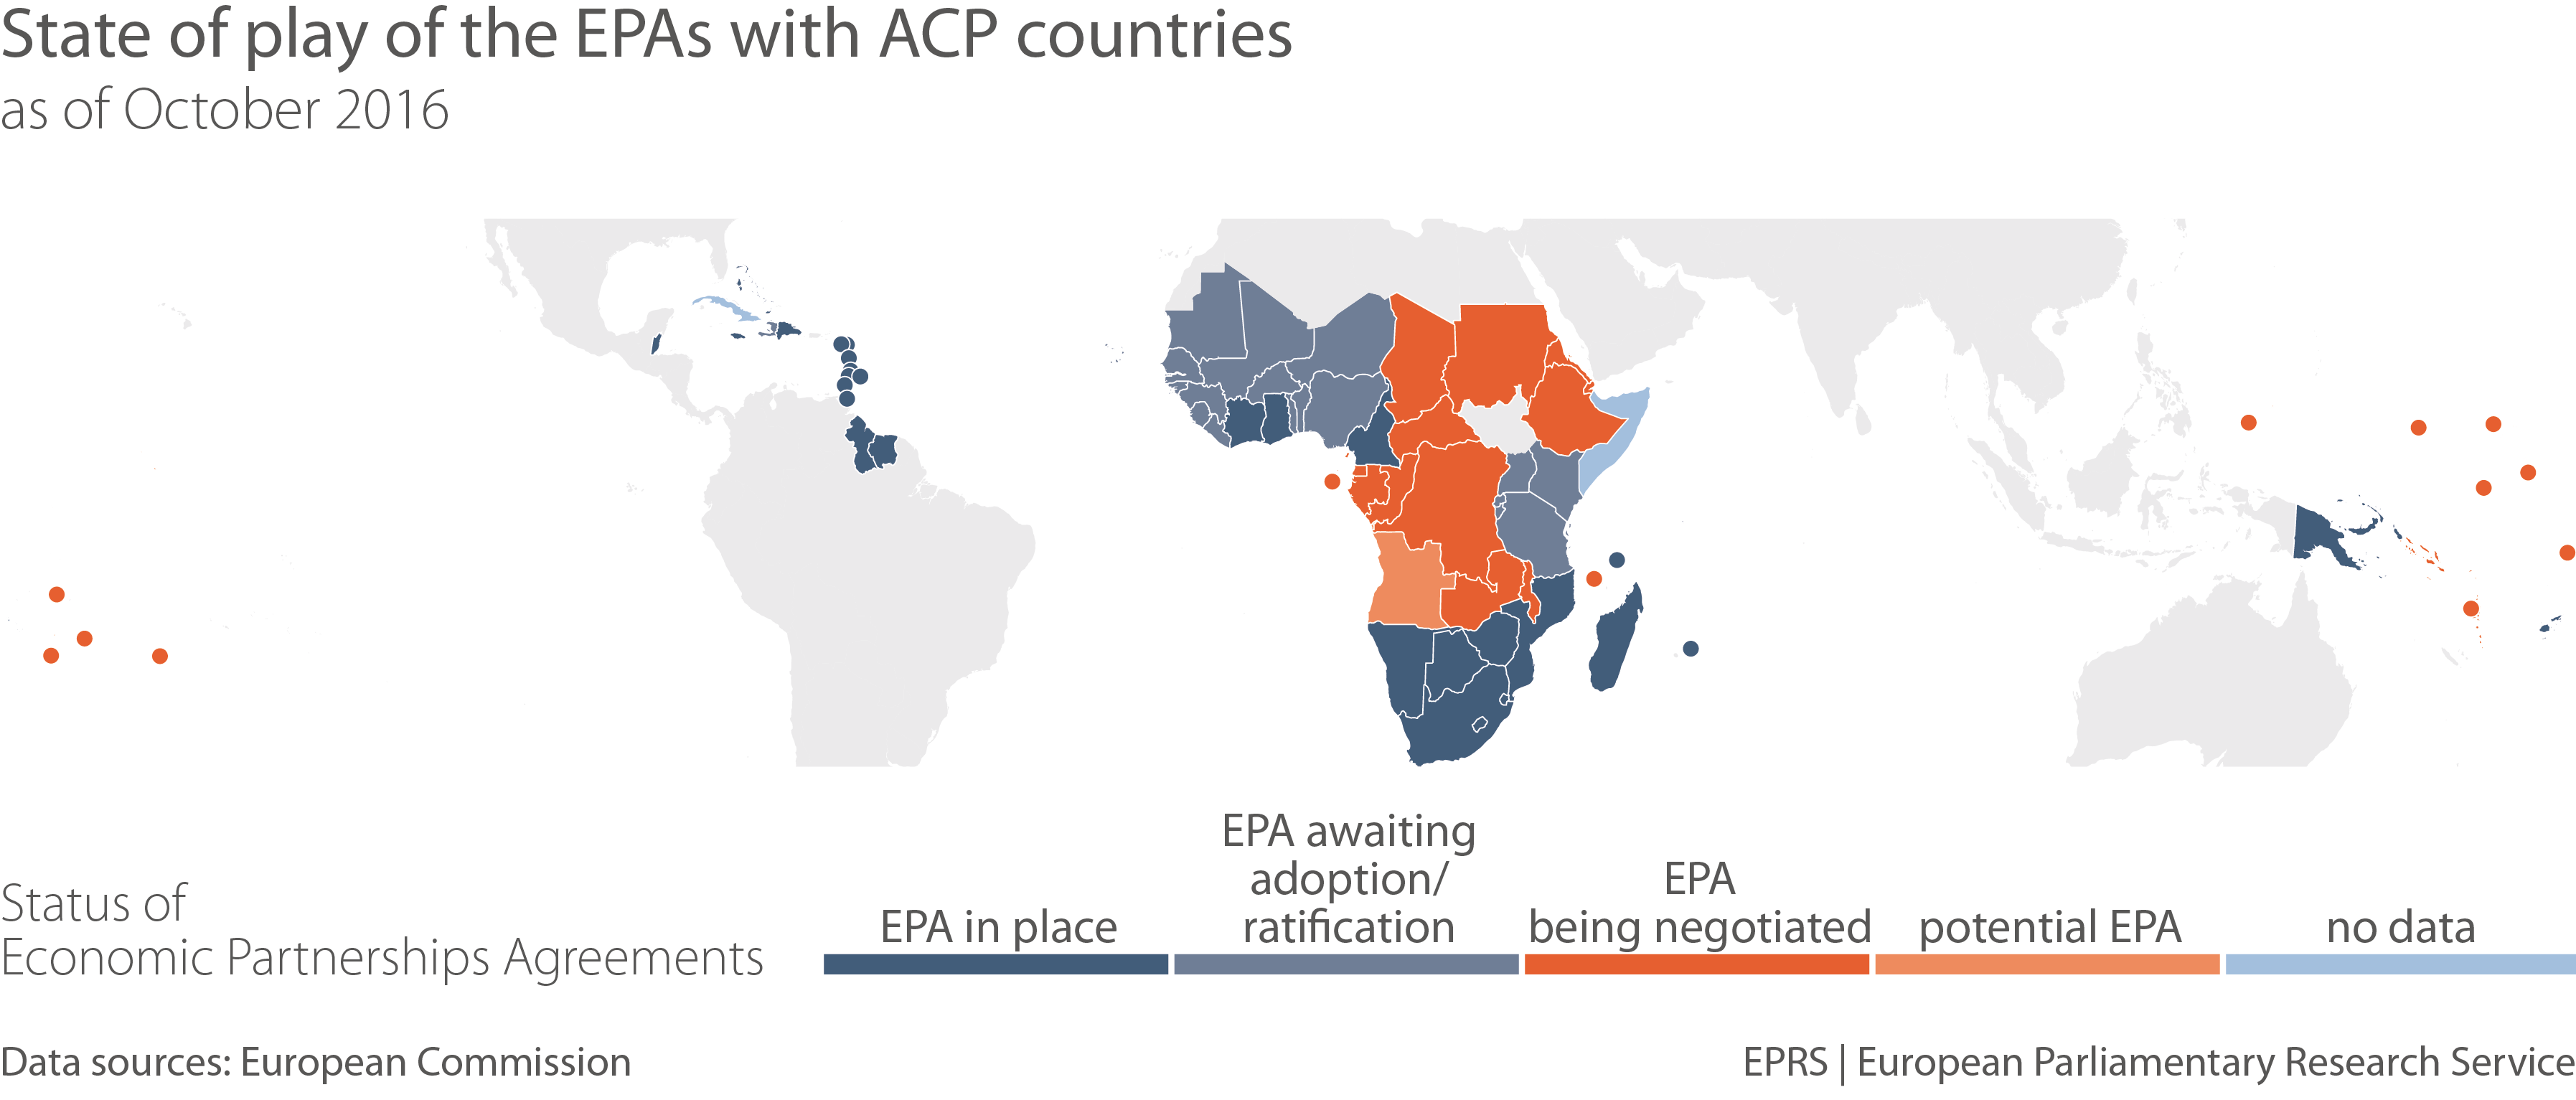 State Of Play Of Epas With Acp Countries As Of October 2016